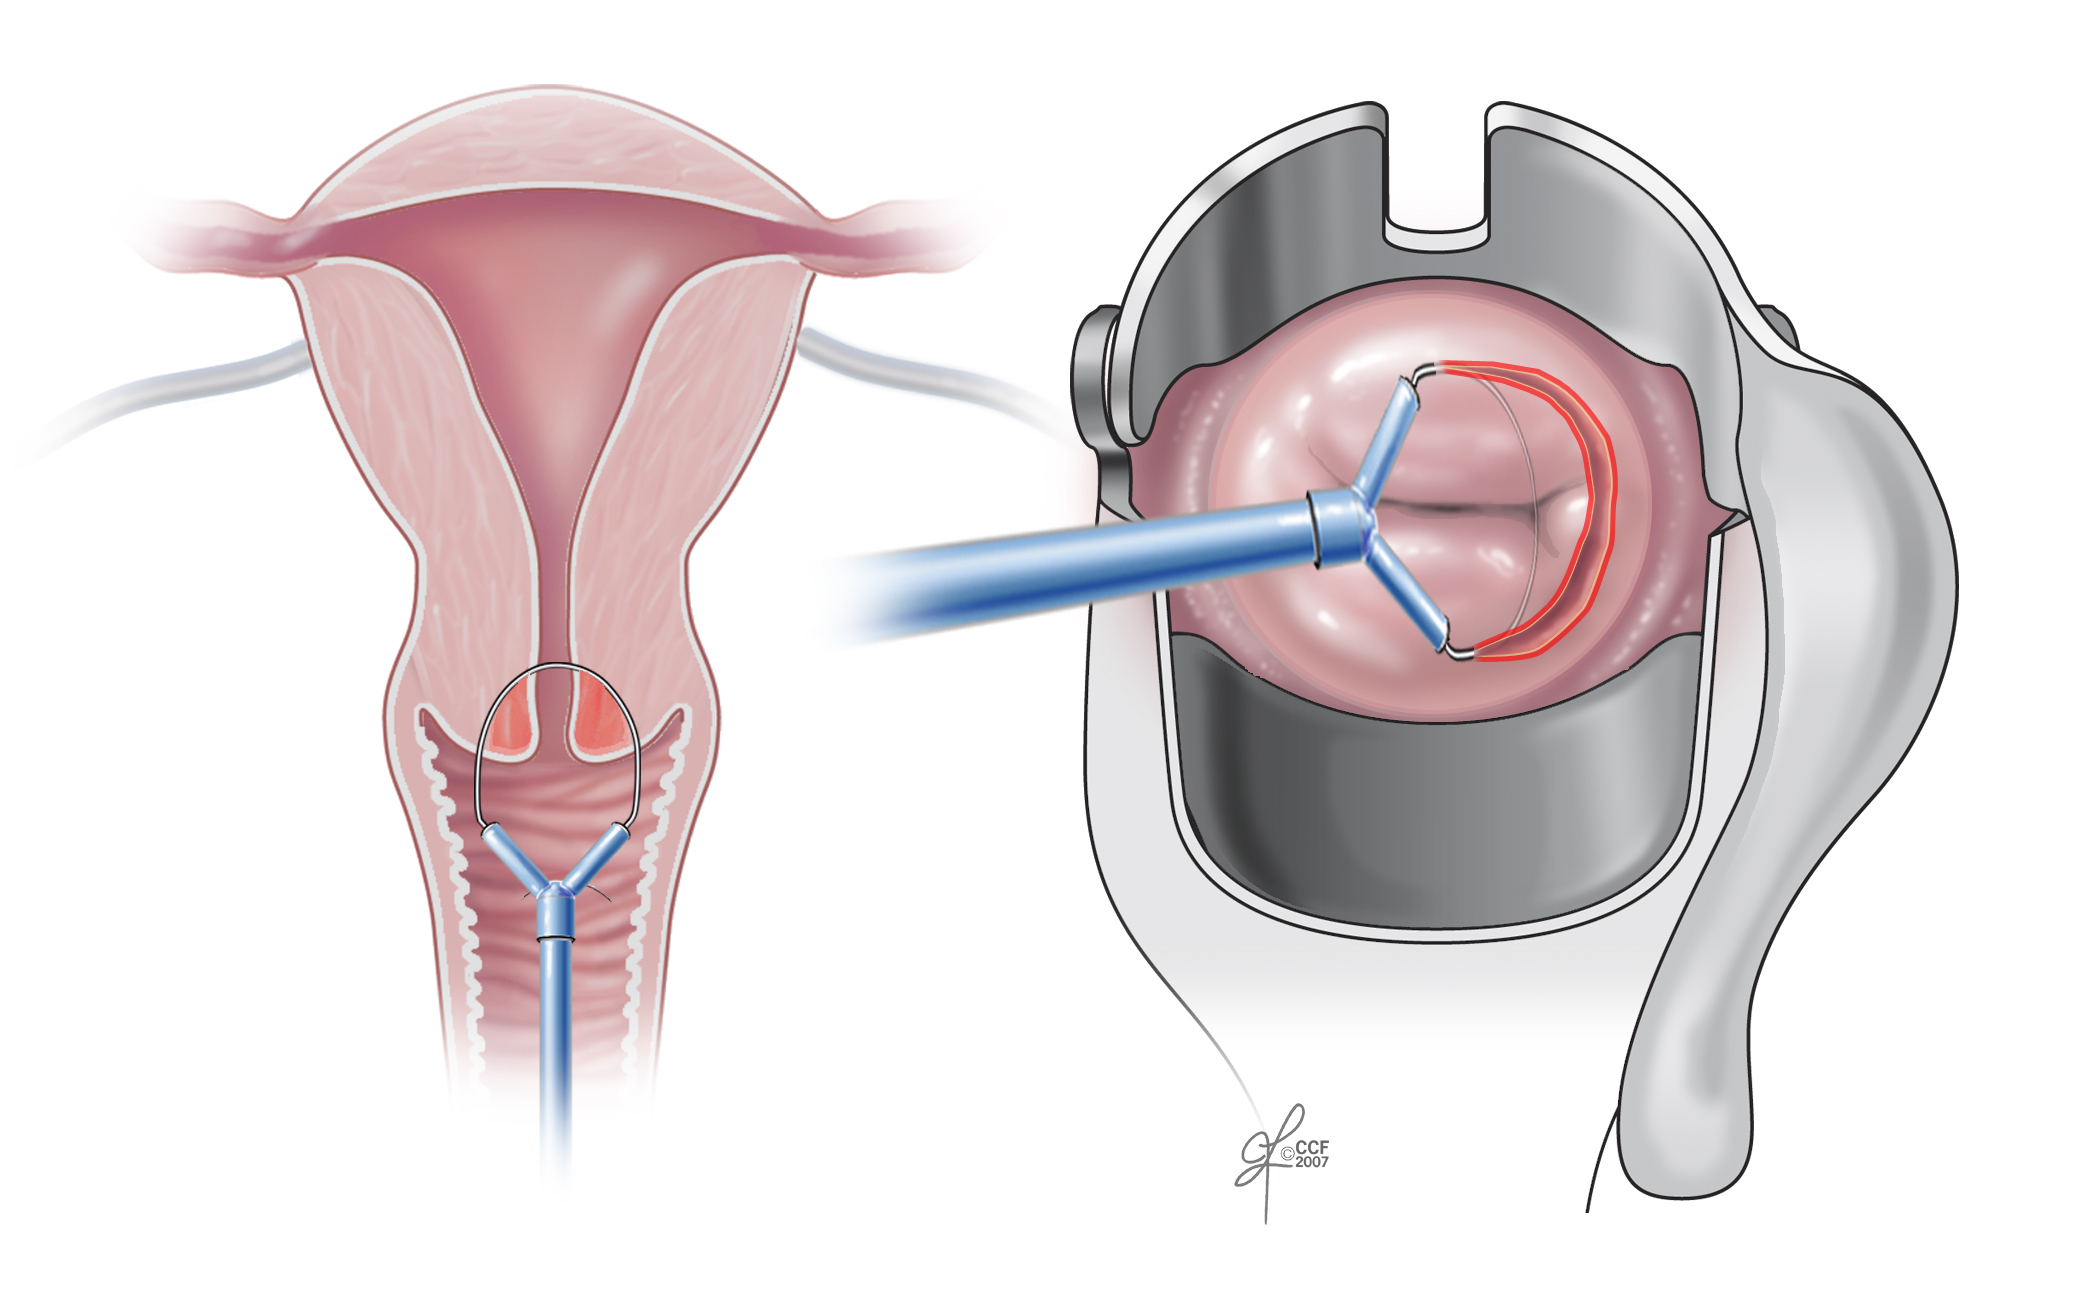 Hpv causes ovarian cancer